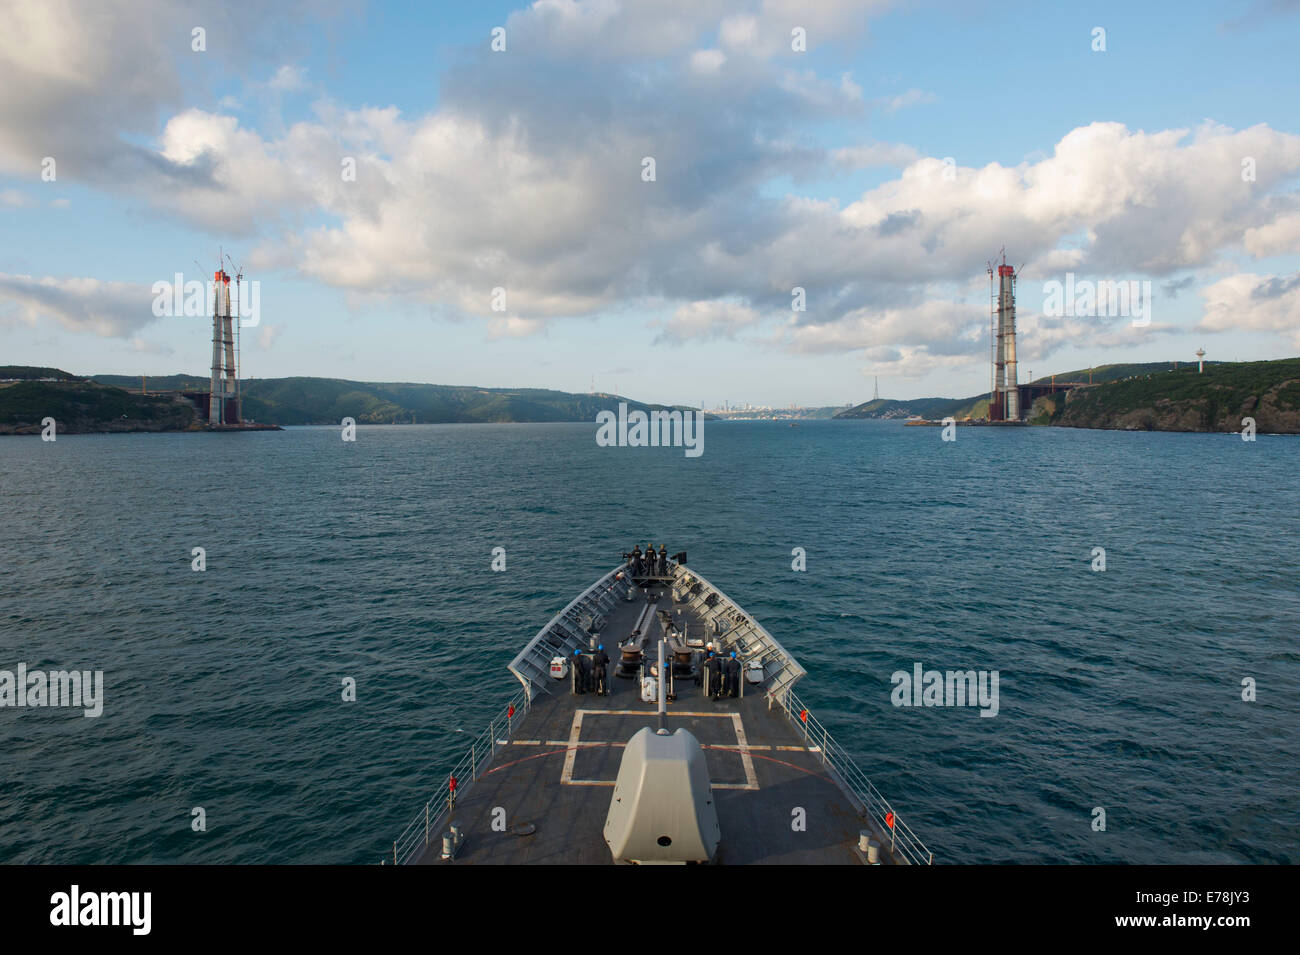 The guided missile cruiser USS Vella Gulf (CG 72) departs the Black Sea and enters the Bosphorus strait Aug. 26, - Stock Image